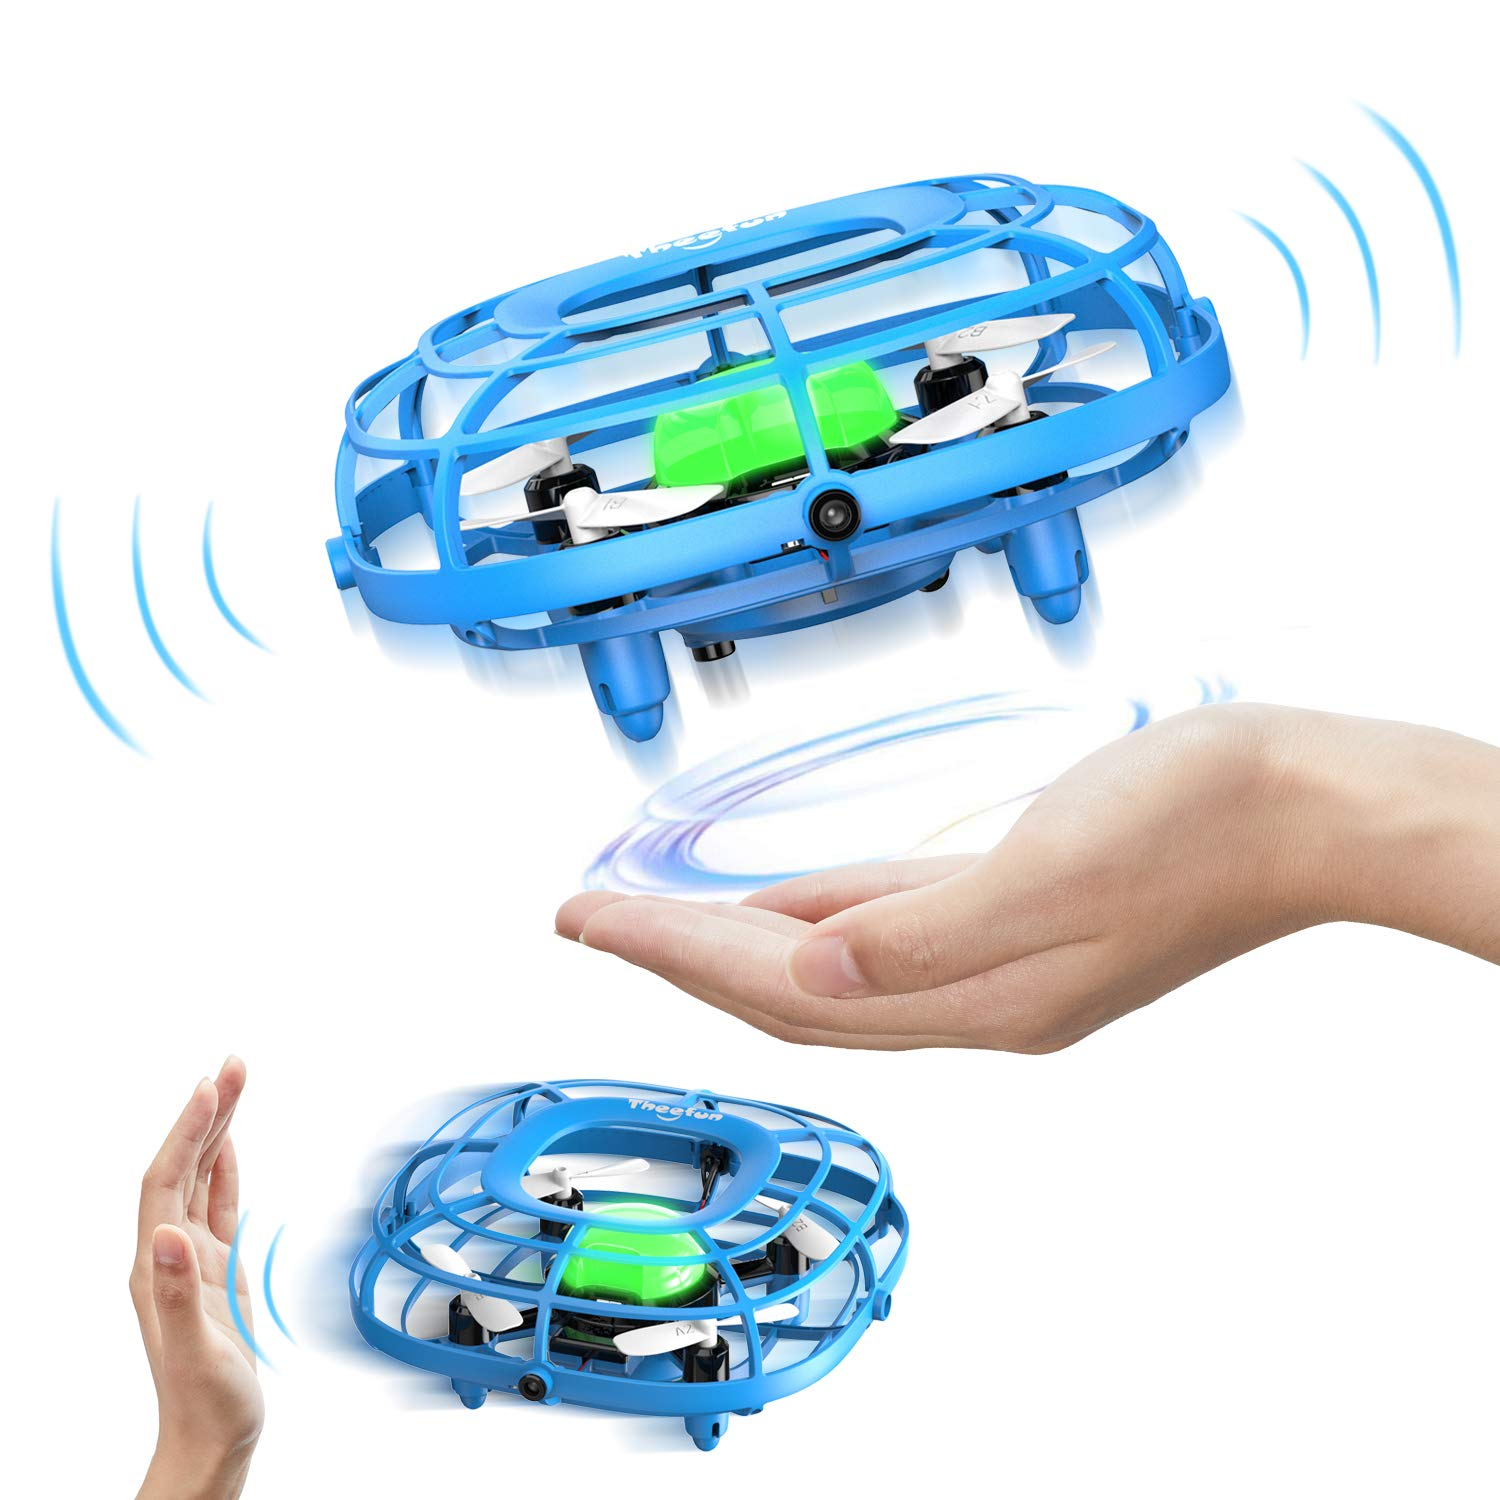 Theefun Mini Drone with LED Lights, Levitation UFO Drone, Hand Operated Quad Induction, Easy Controlled Flying Quadcopter with 2 Speed, Mini Handheld USB Fan,Toys for Boys and Girls by Theefun